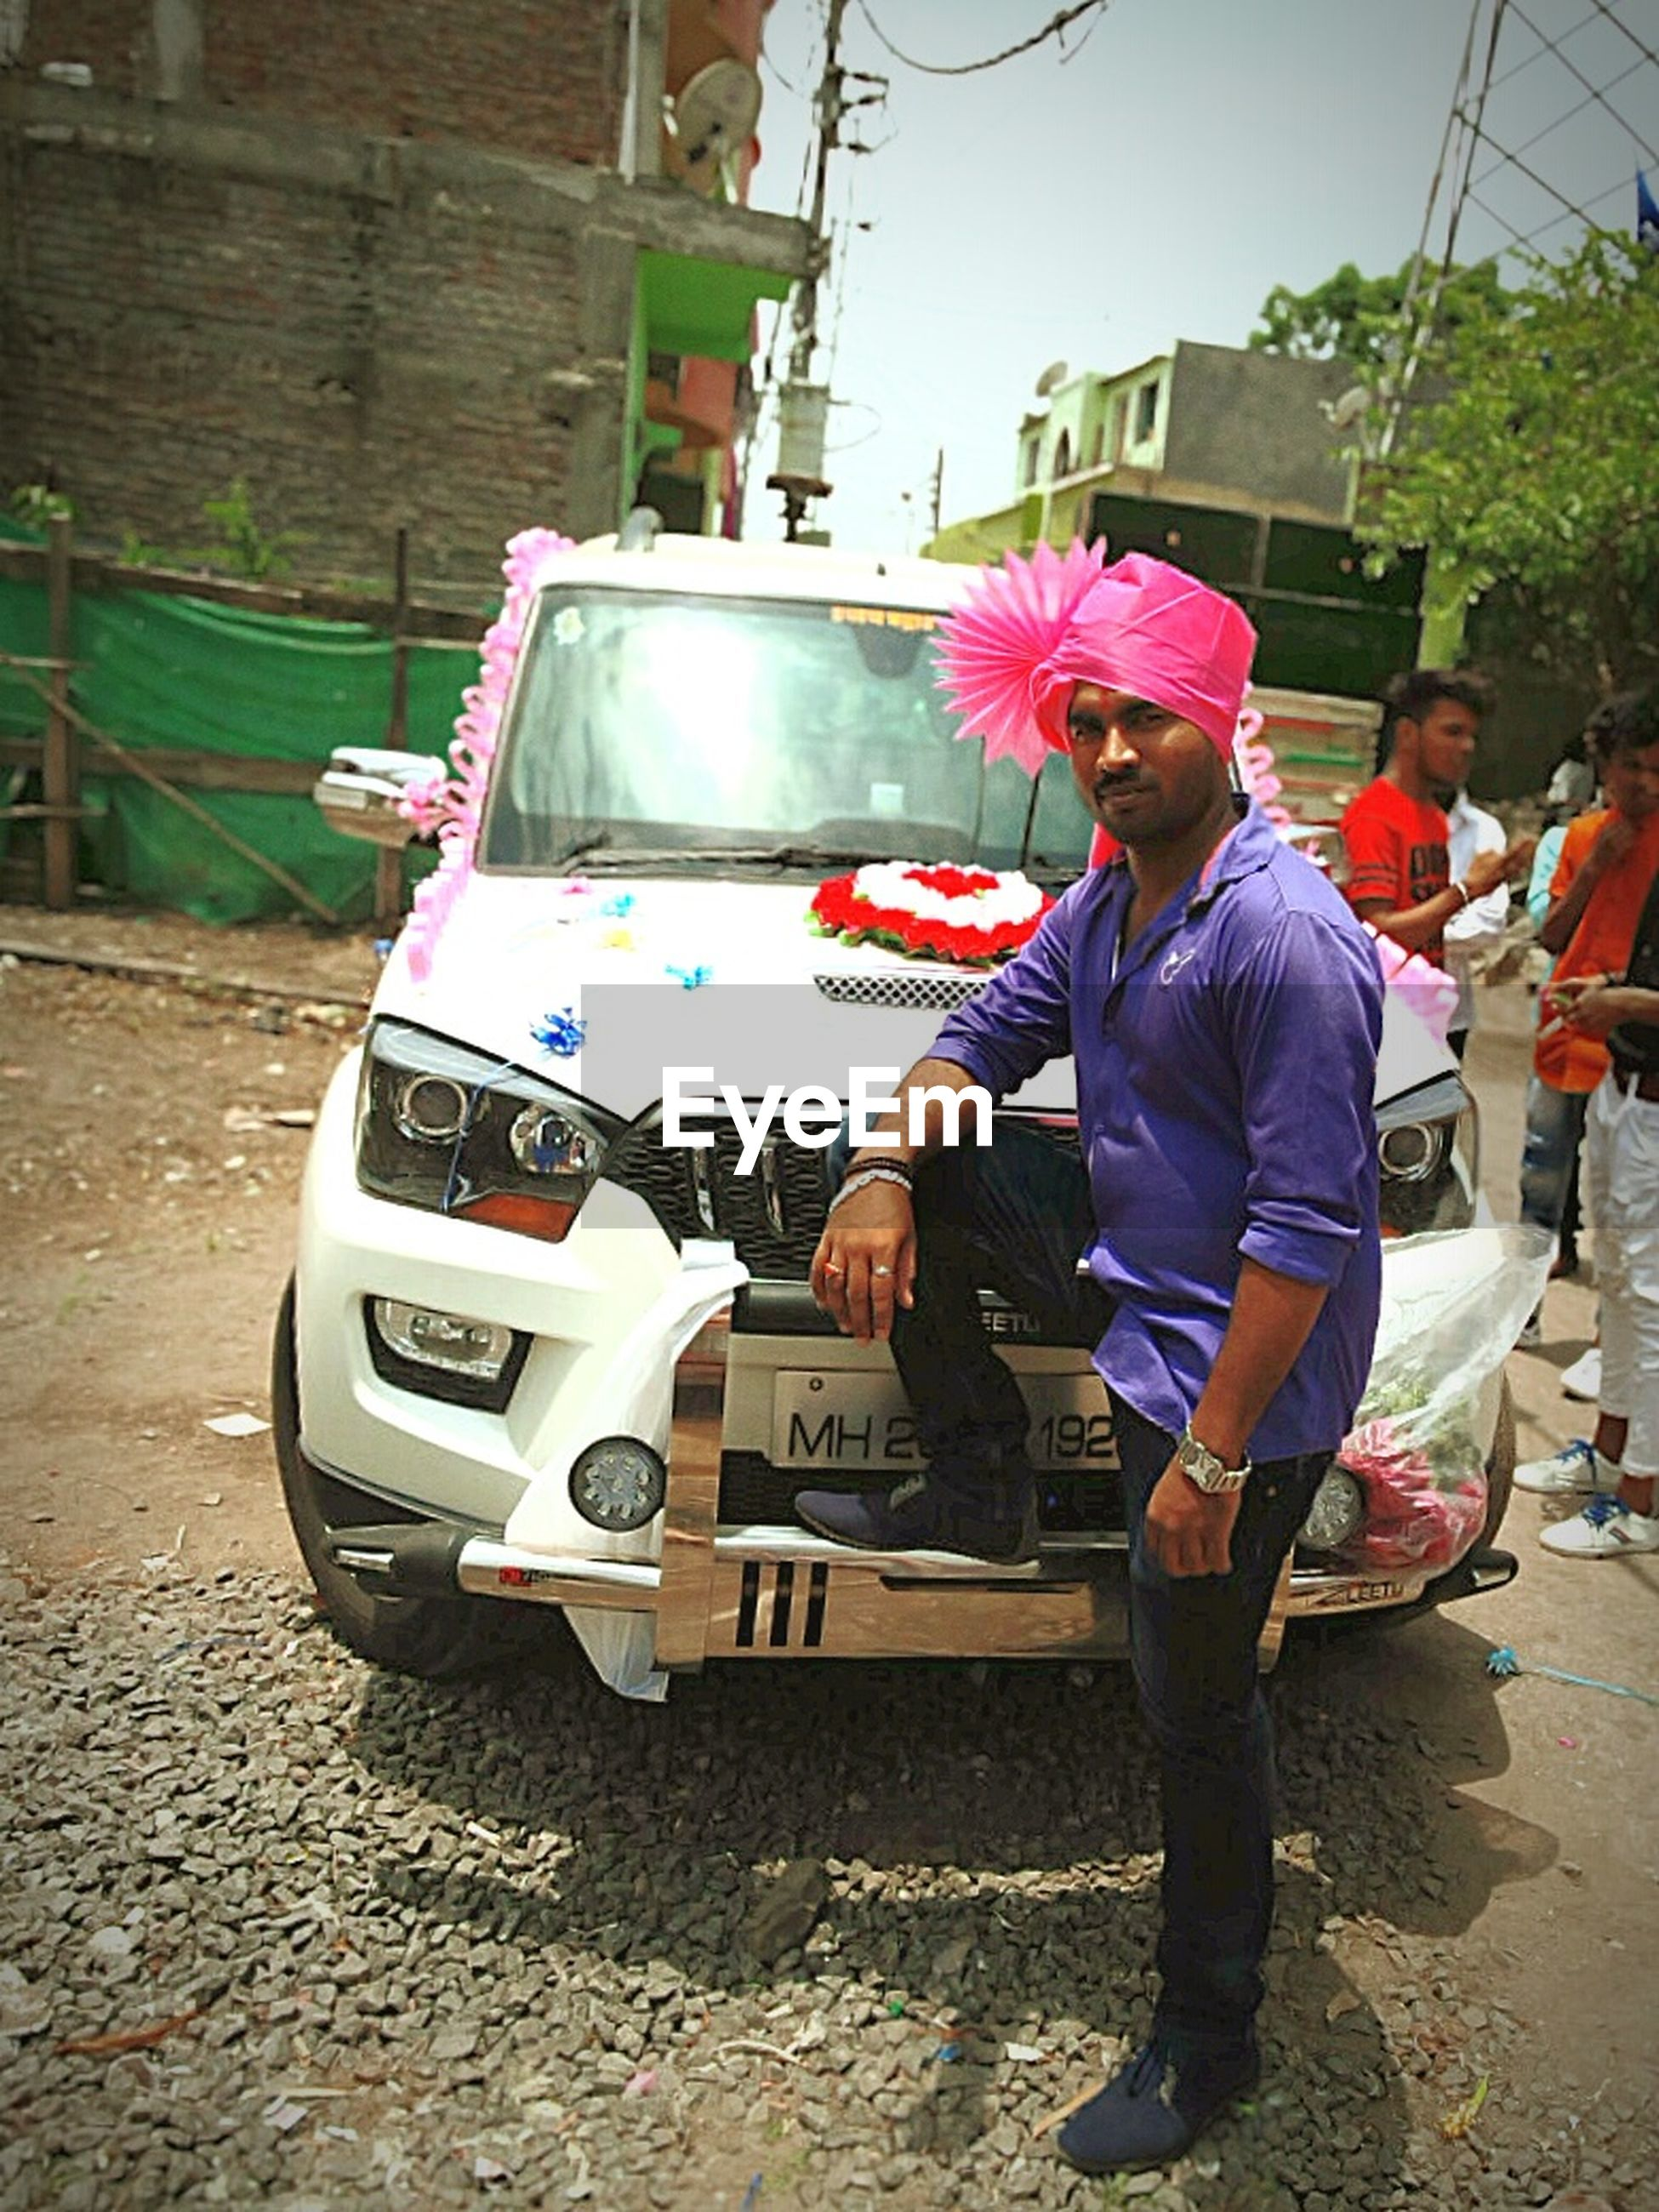 car, land vehicle, mode of transport, real people, transportation, standing, lifestyles, day, full length, one person, cap, outdoors, turban, men, adult, adults only, people